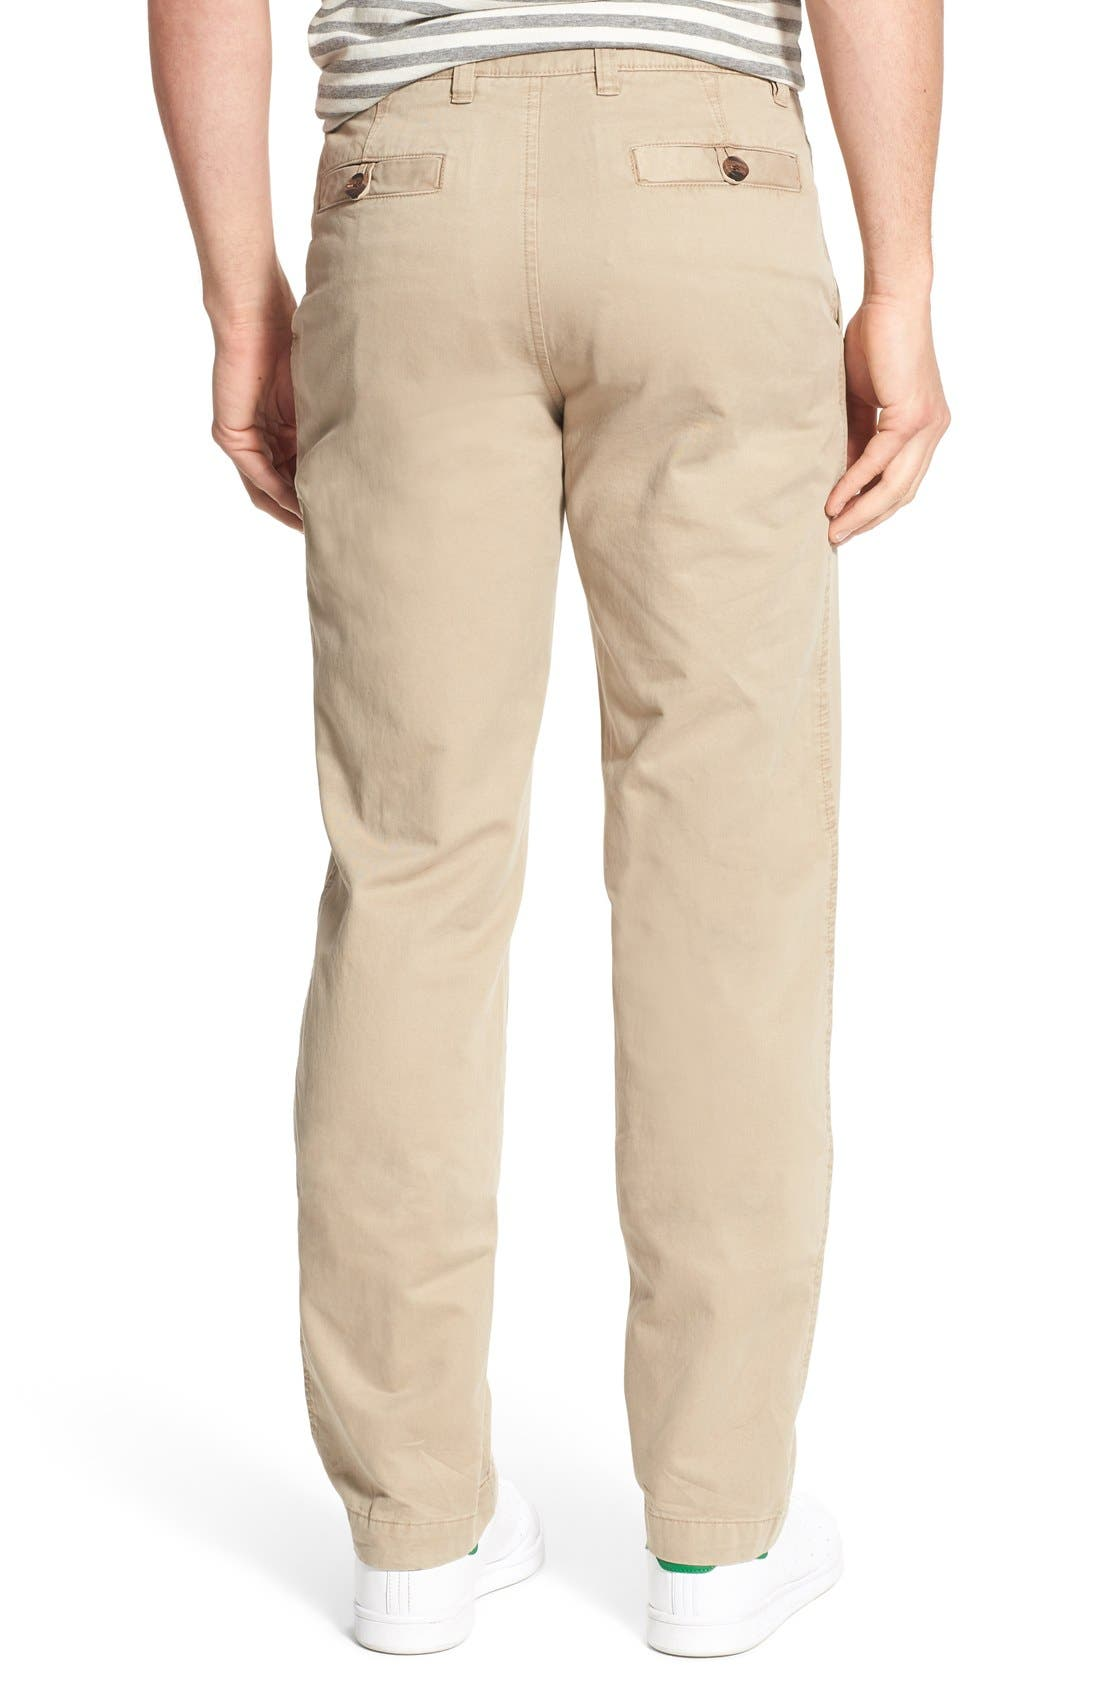 'Sahara' Trim Fit Vintage Washed Twill Chinos,                             Alternate thumbnail 13, color,